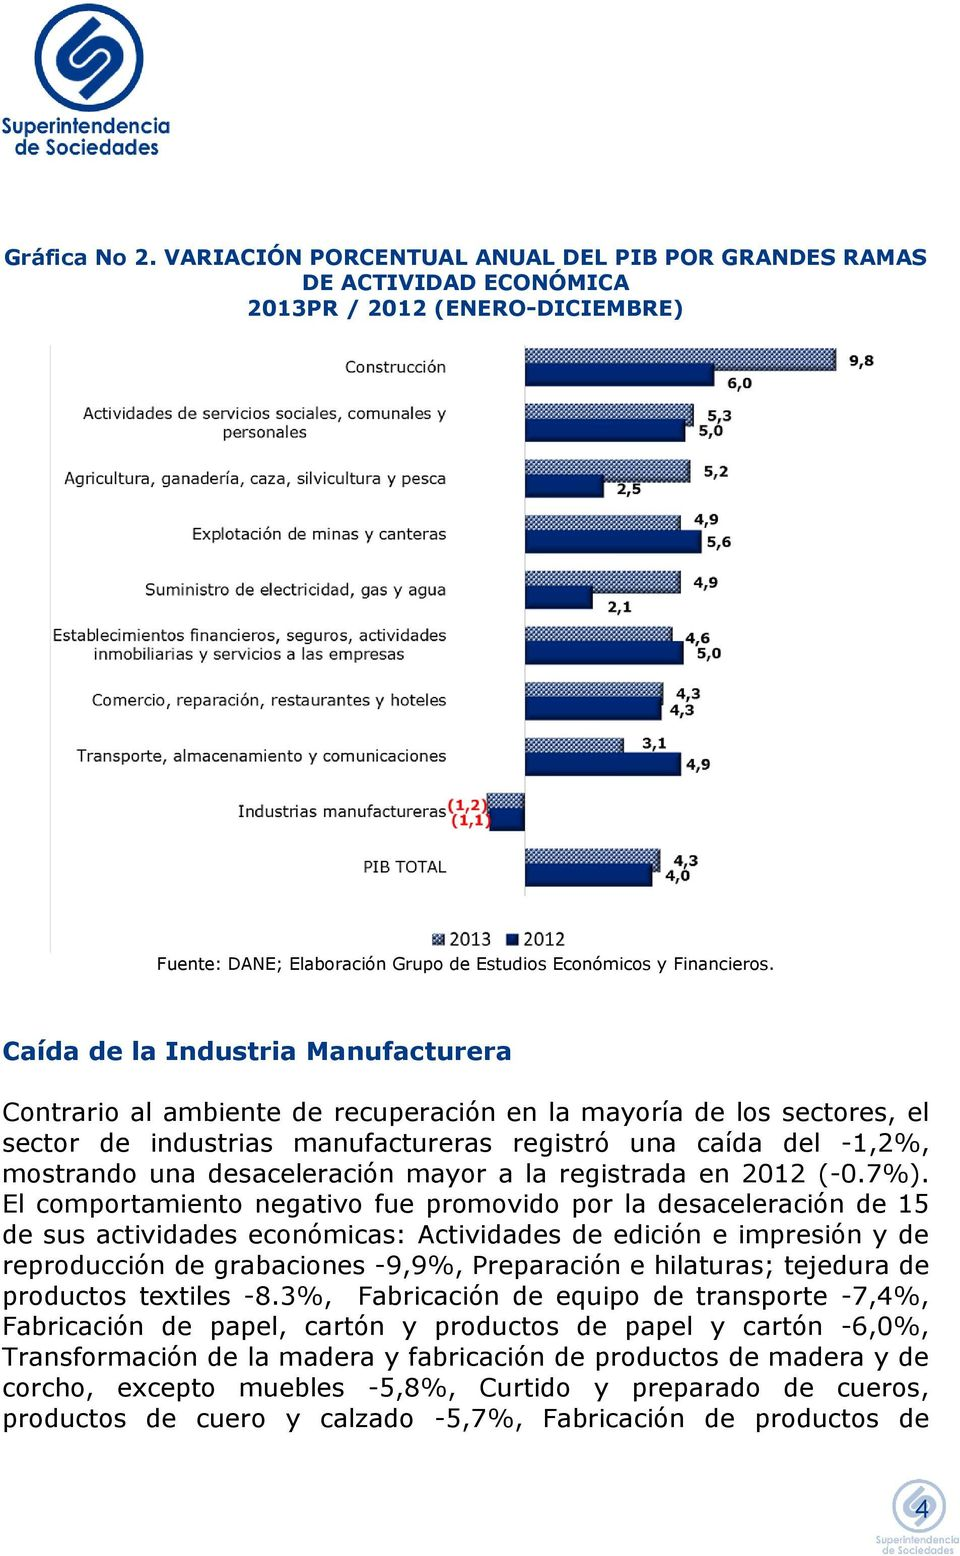 desaceleración mayor a la registrada en 2012 (-0.7%).